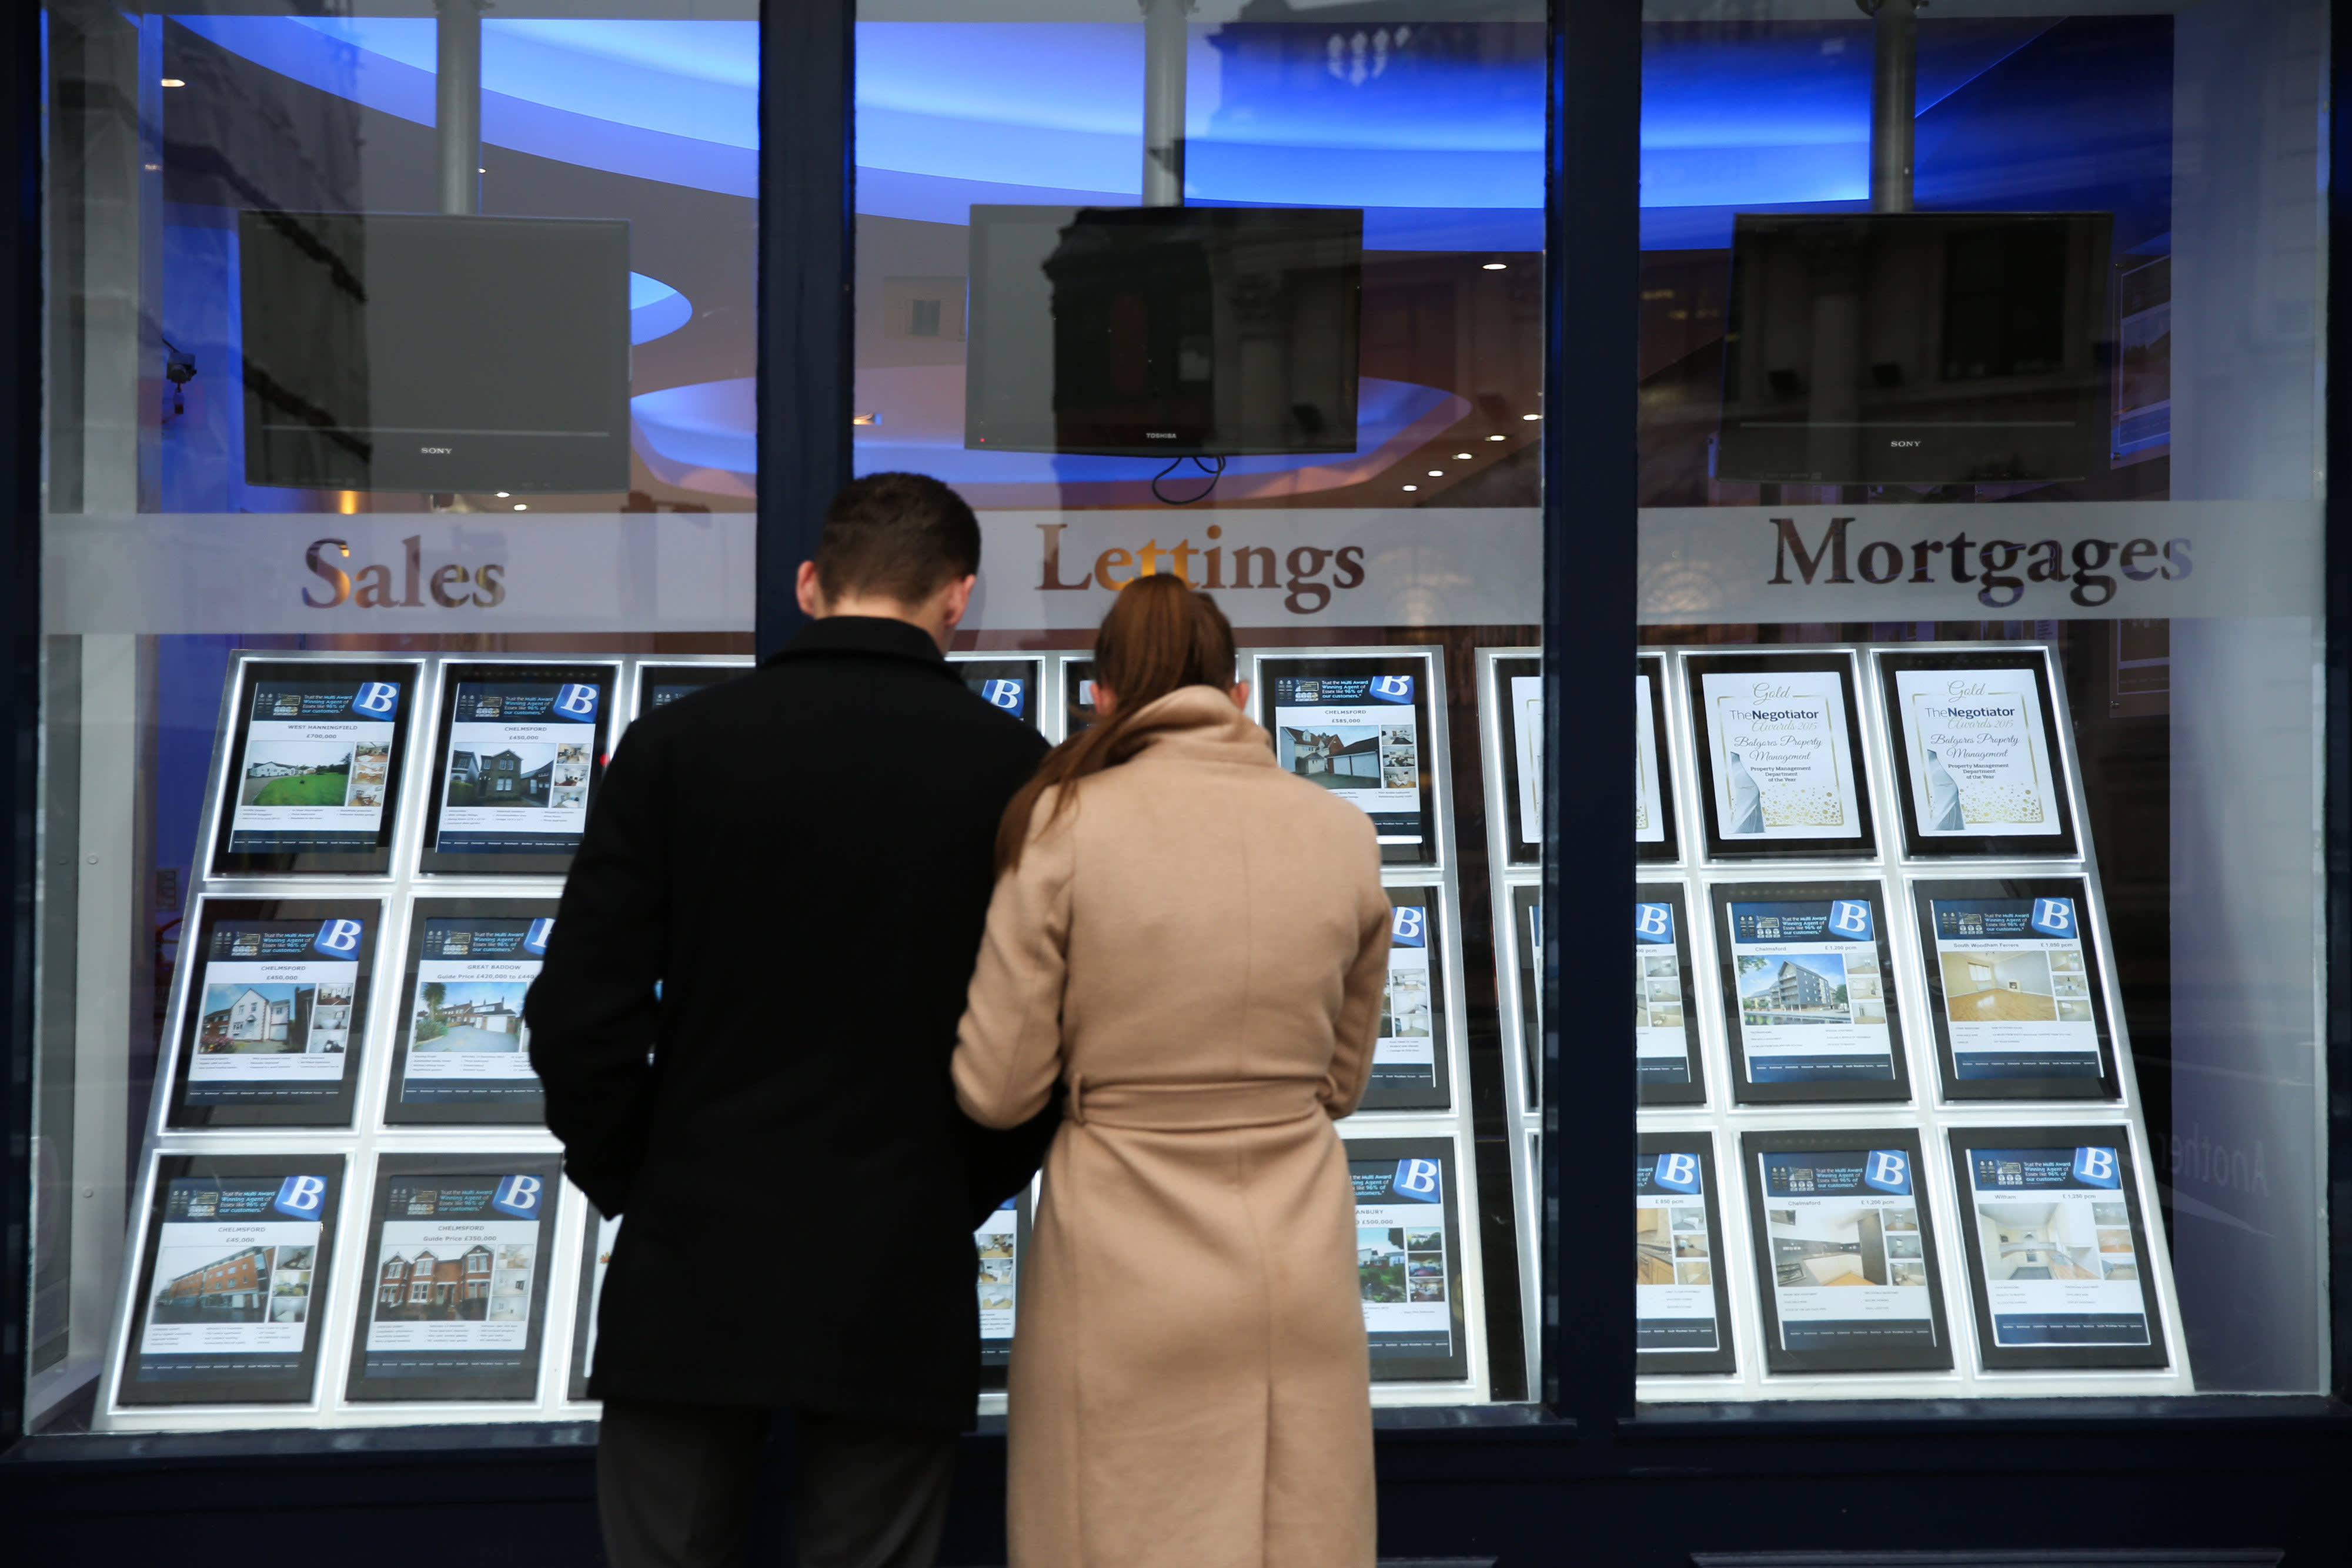 Property transactions remain stagnant